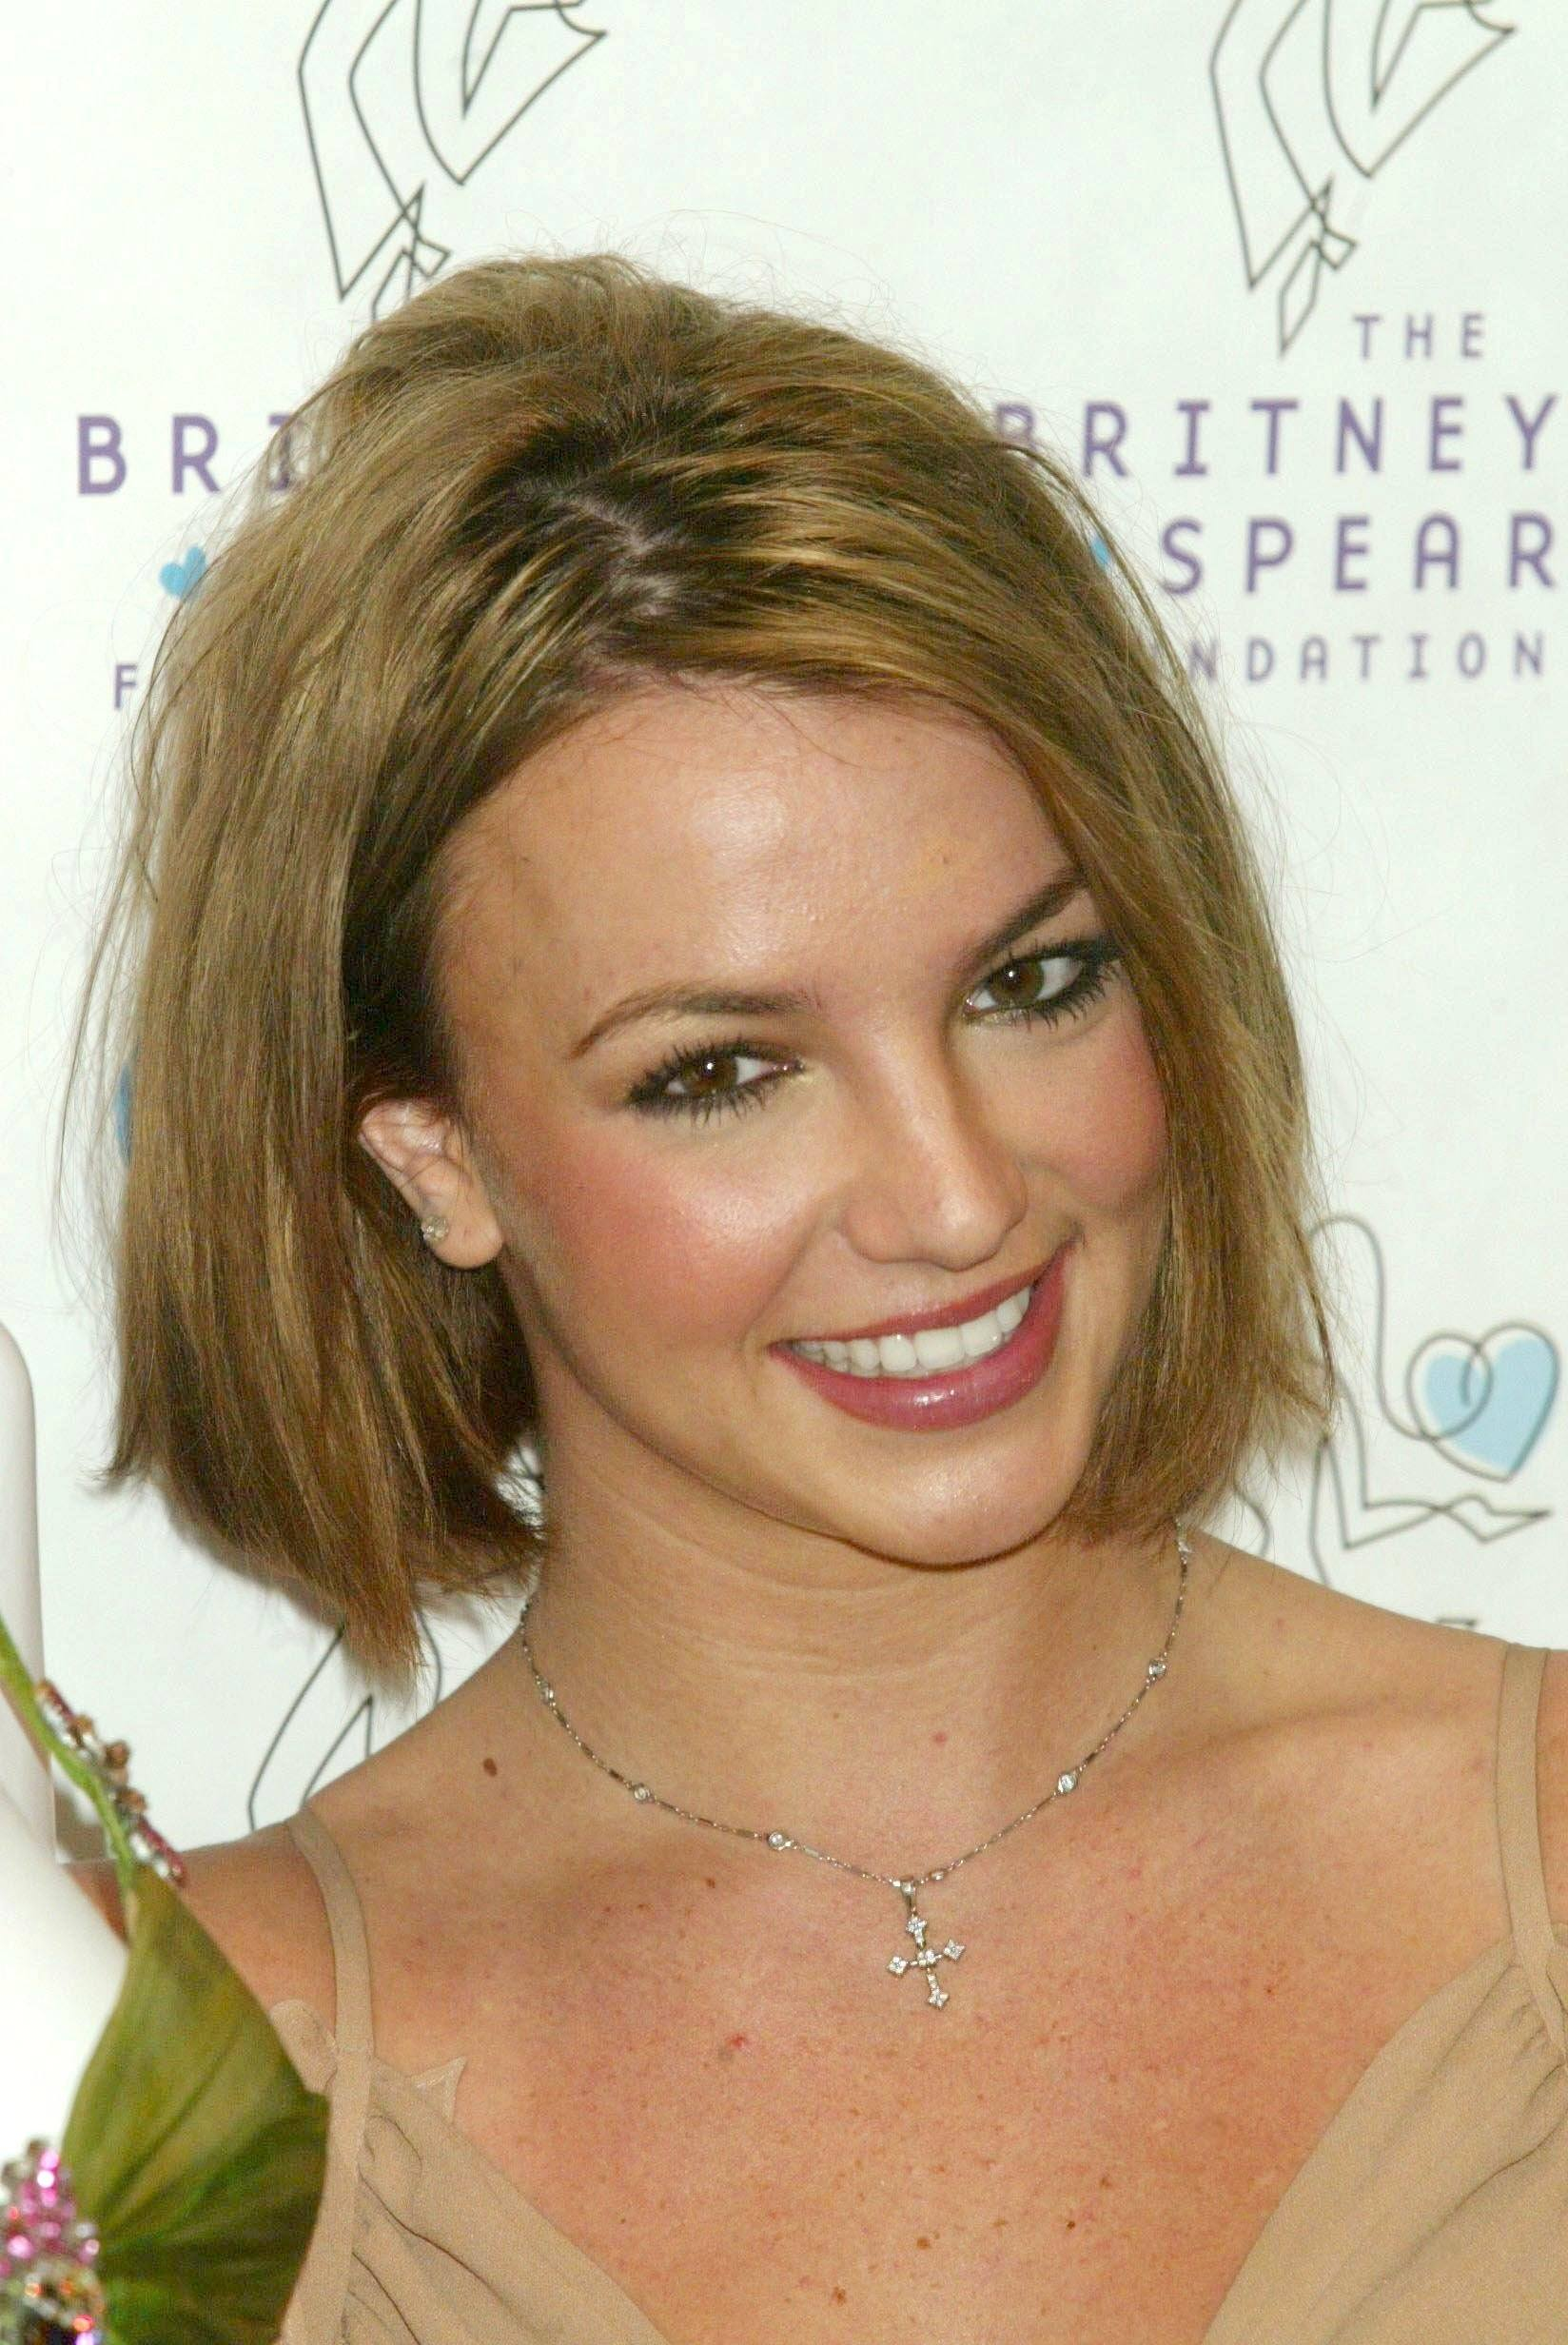 Singer Britney Spears With A Golden Brunette Bob Haircut